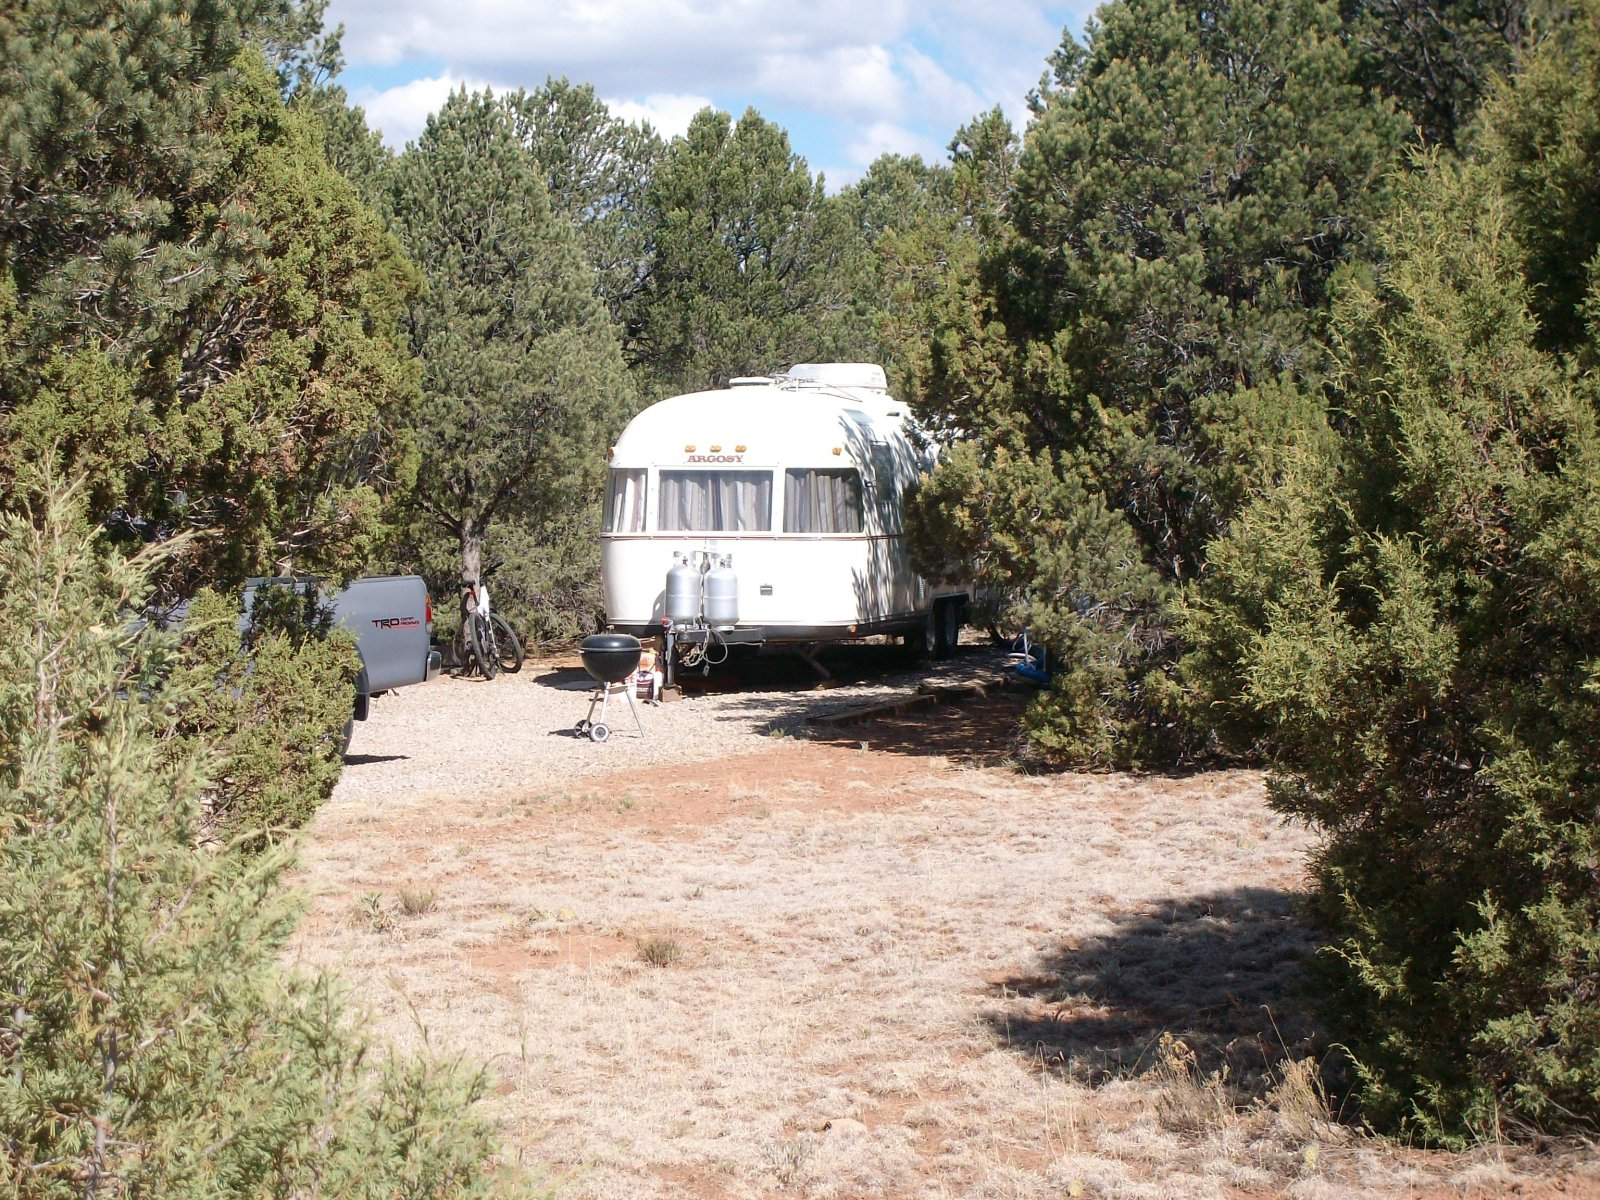 Click image for larger version  Name:Campsite4.jpg Views:99 Size:665.7 KB ID:134326